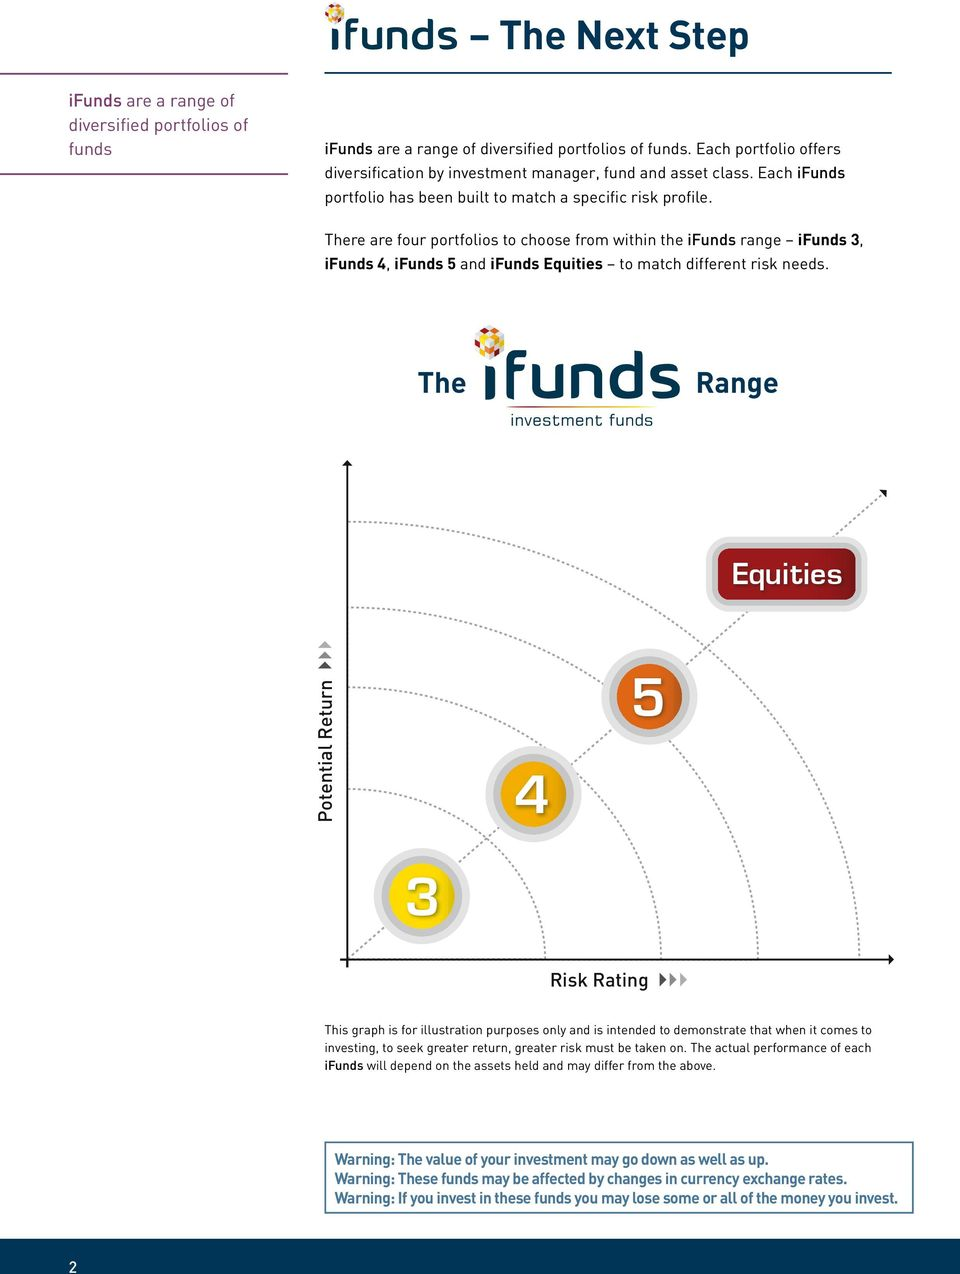 There are four portfolios to choose from within the ifunds range ifunds 3, ifunds 4, ifunds 5 and ifunds Equities to match different risk needs.